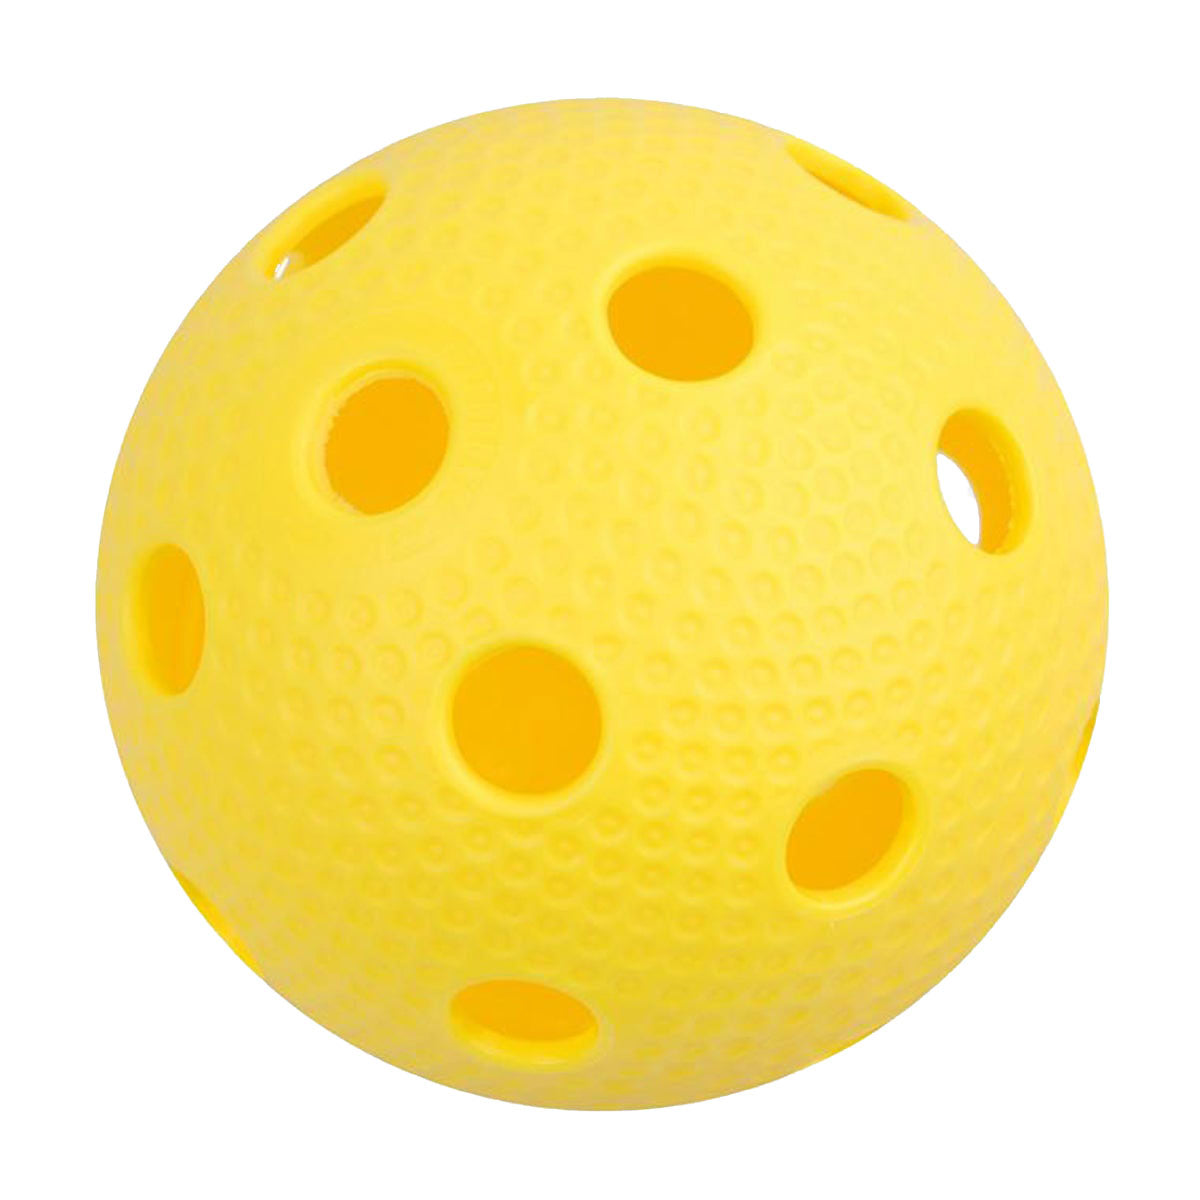 Salming Aero Floorball Ball - Yellow